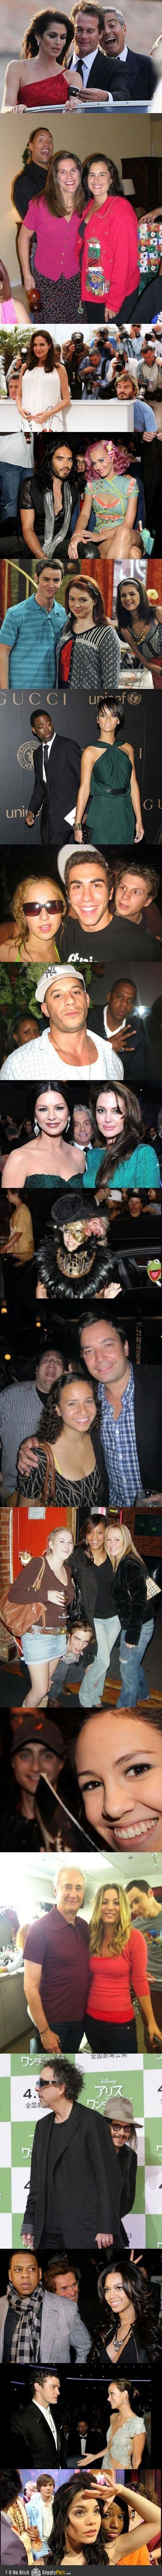 Celeb Photobombs